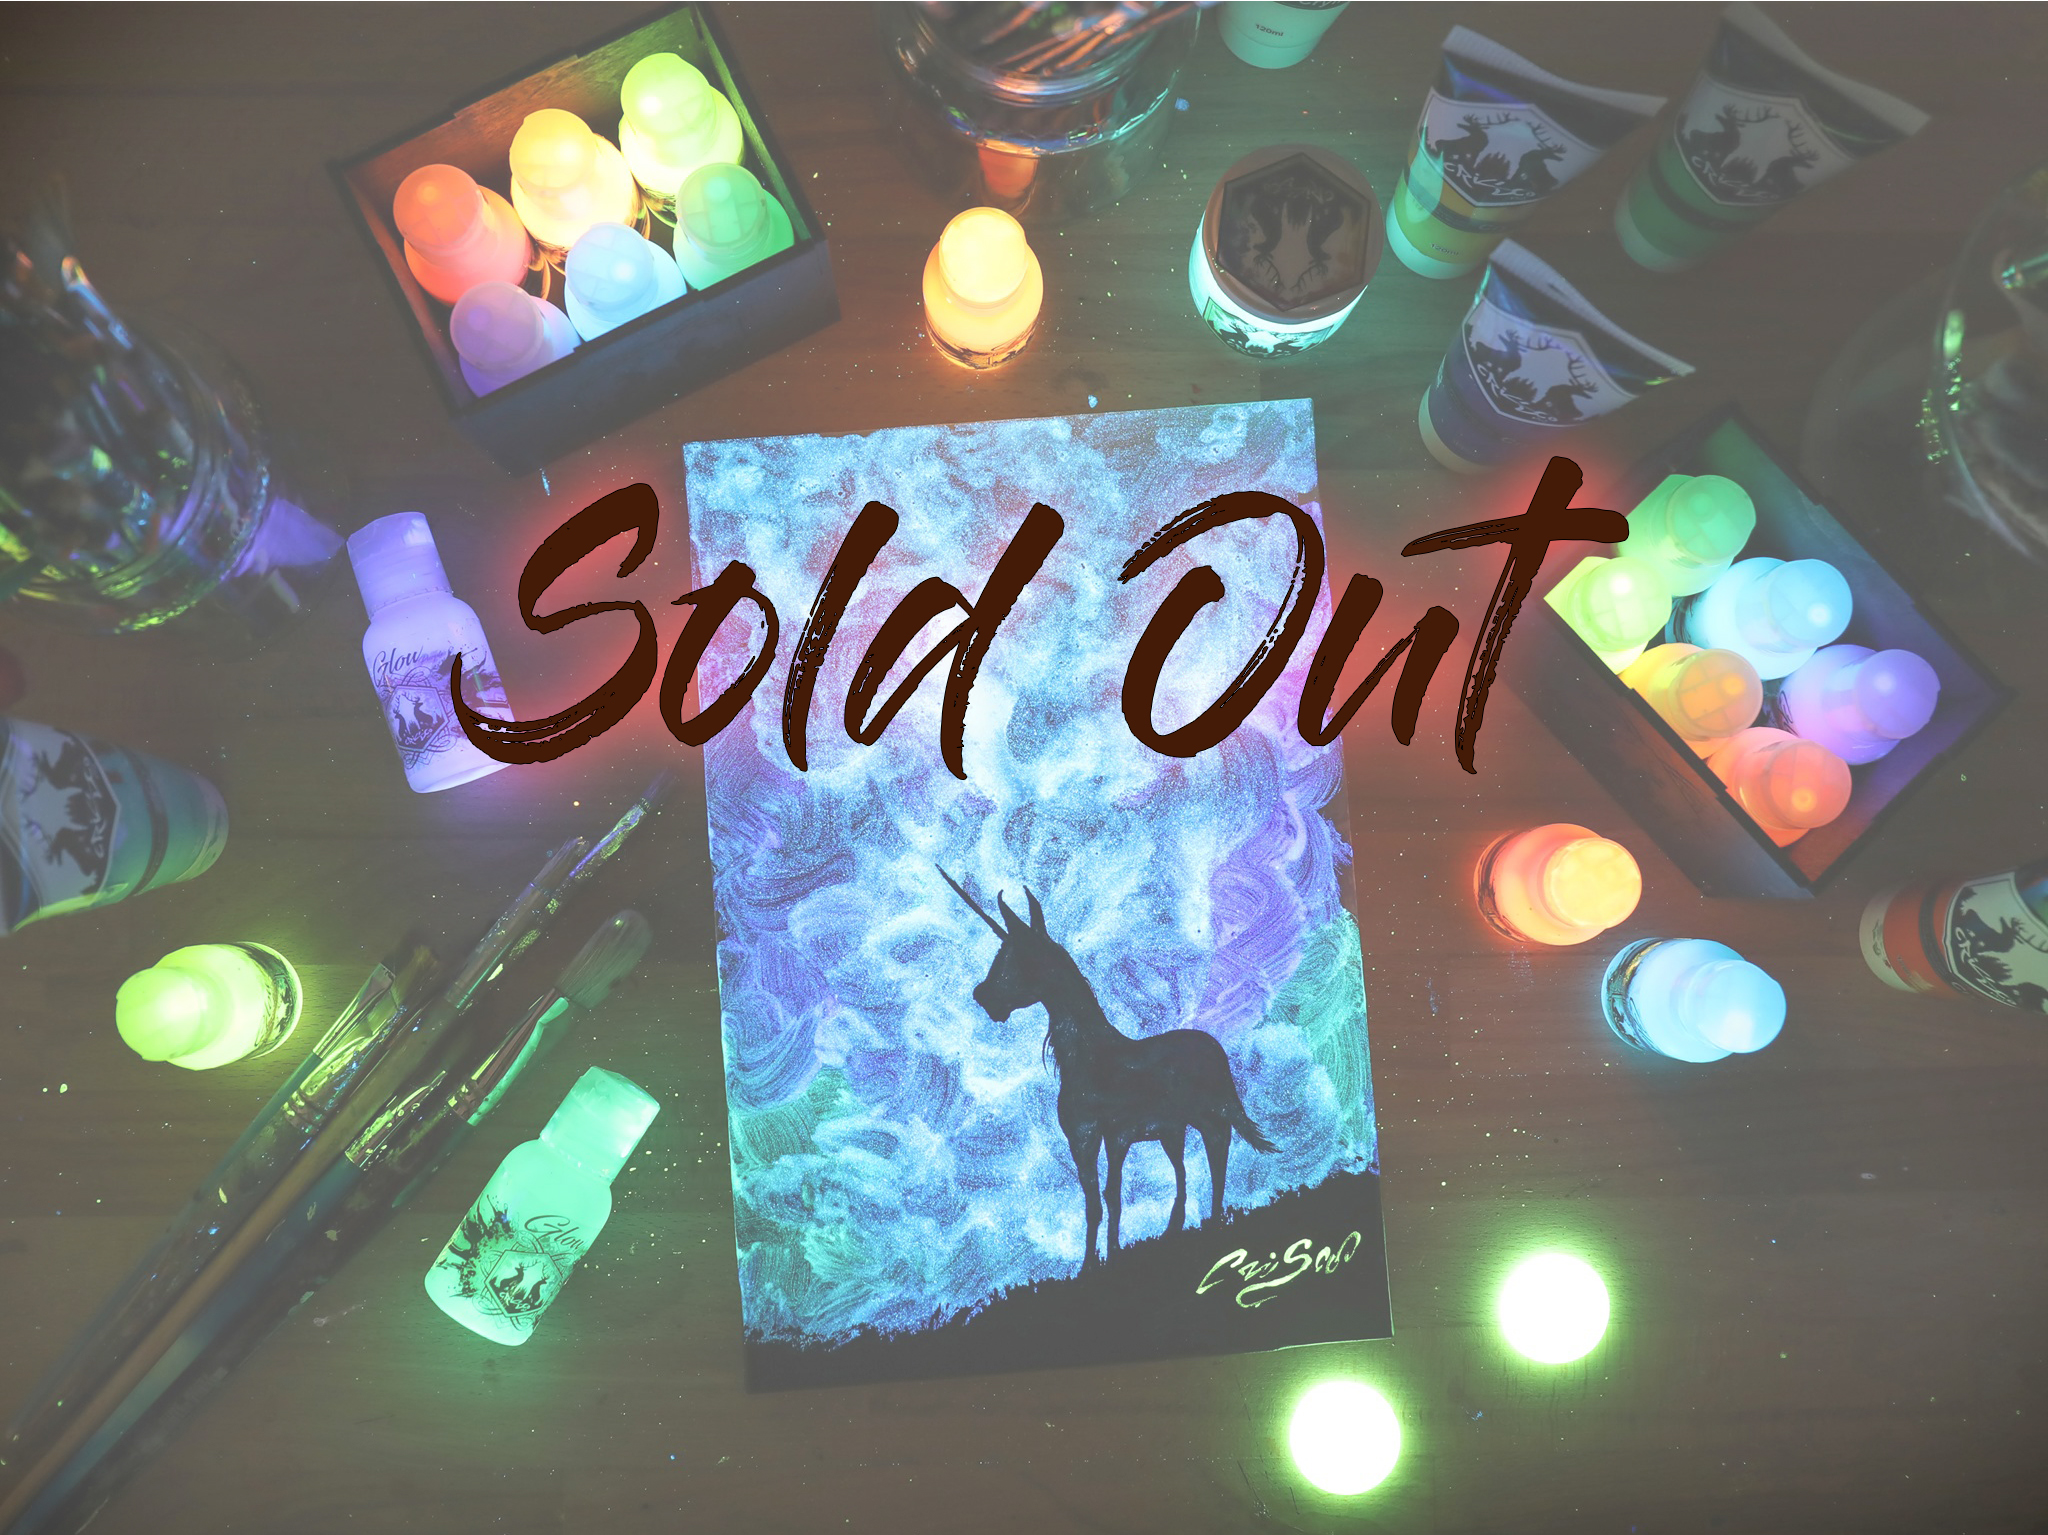 sold out filexx